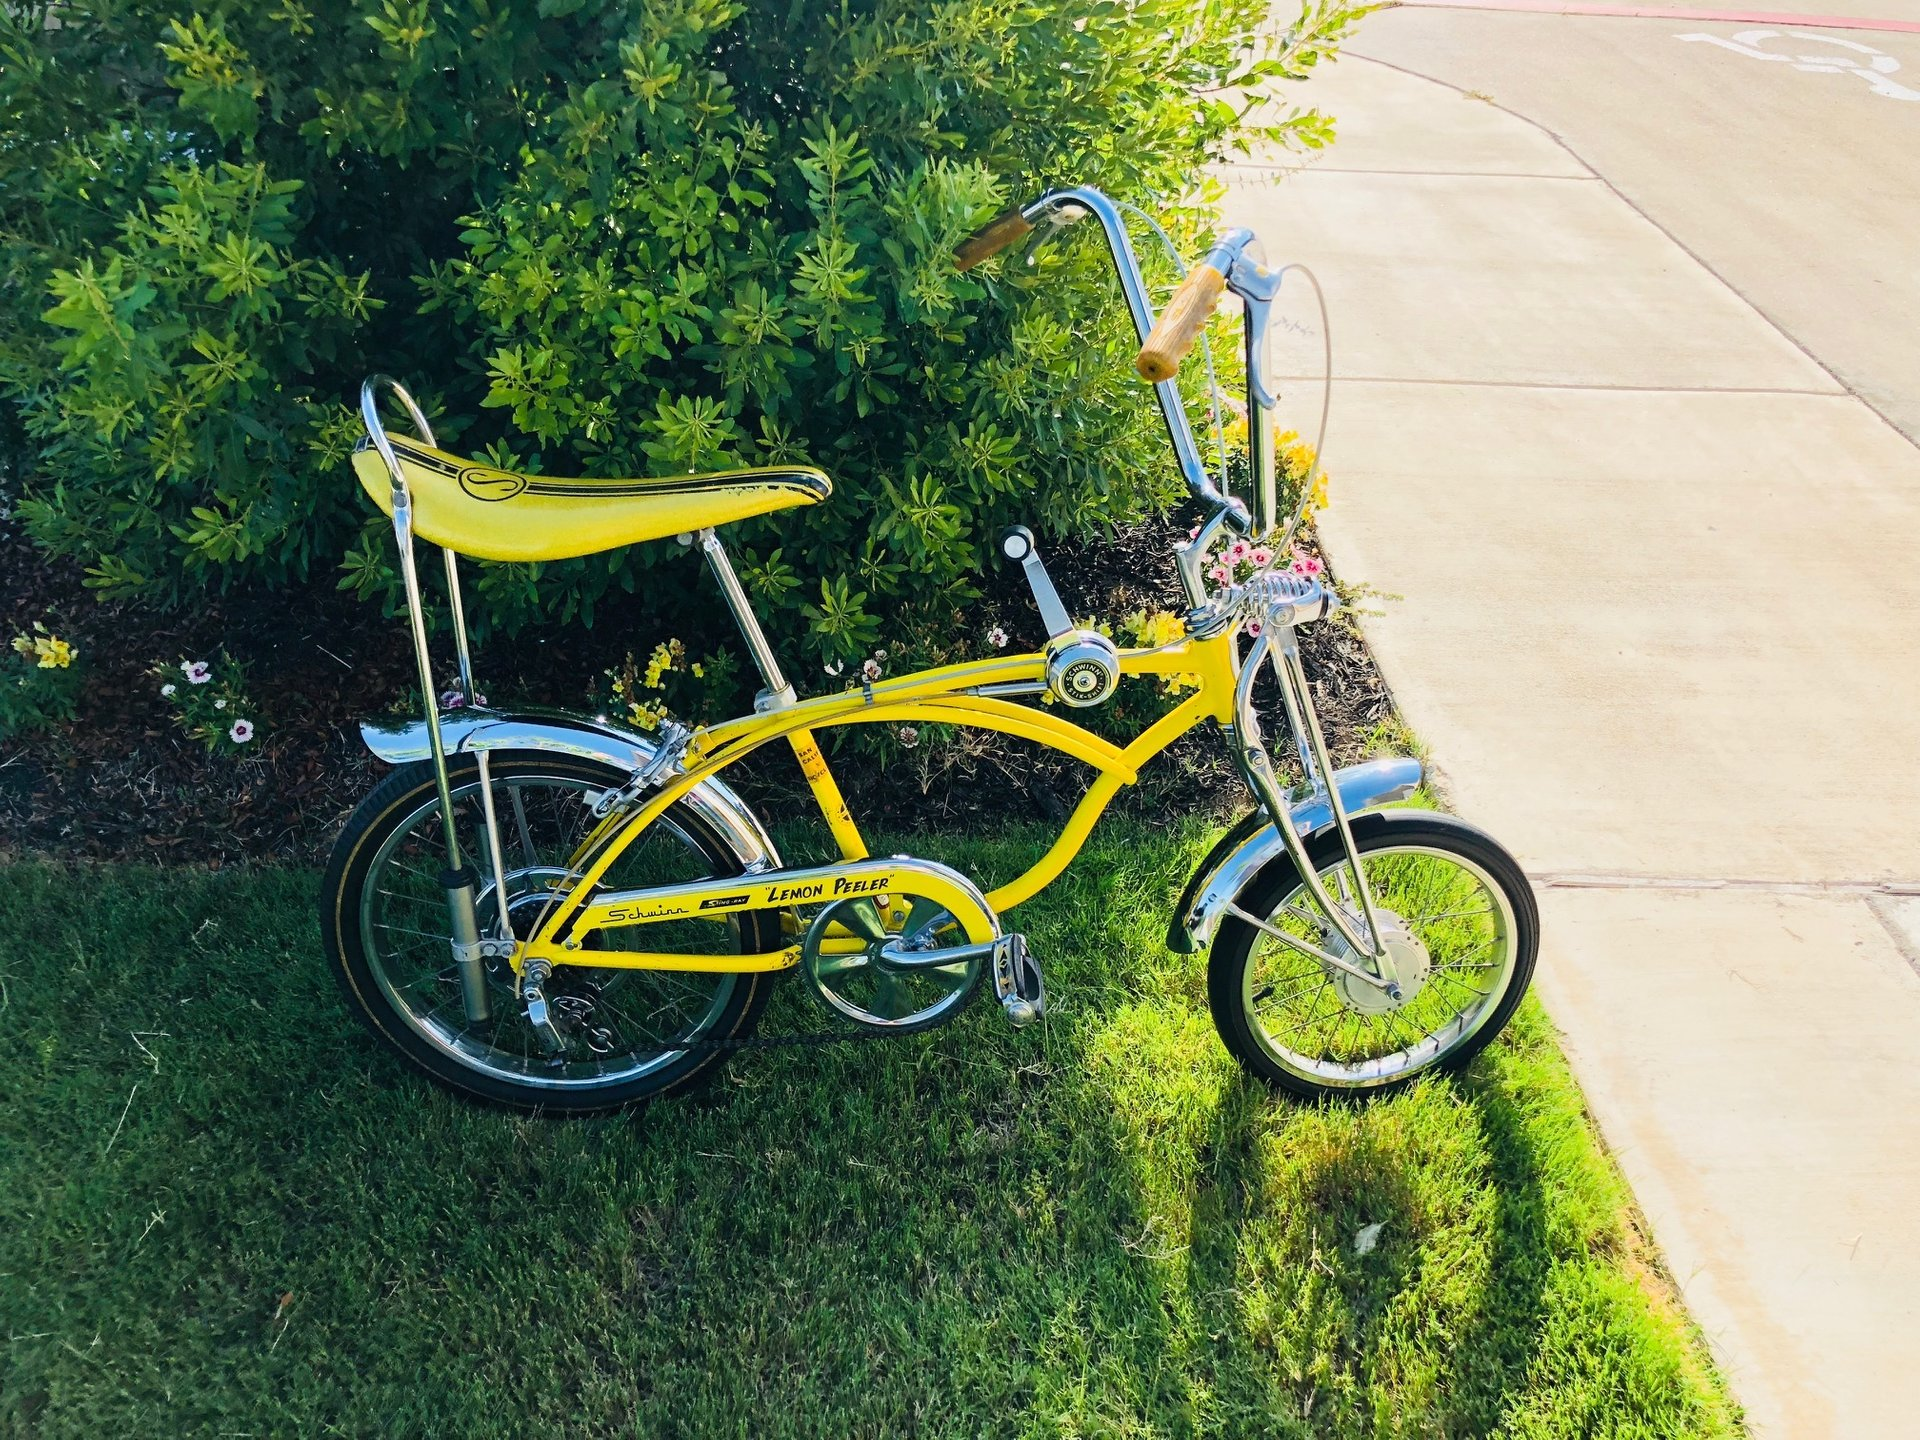 1969 schwinn lemon peeler bicycle